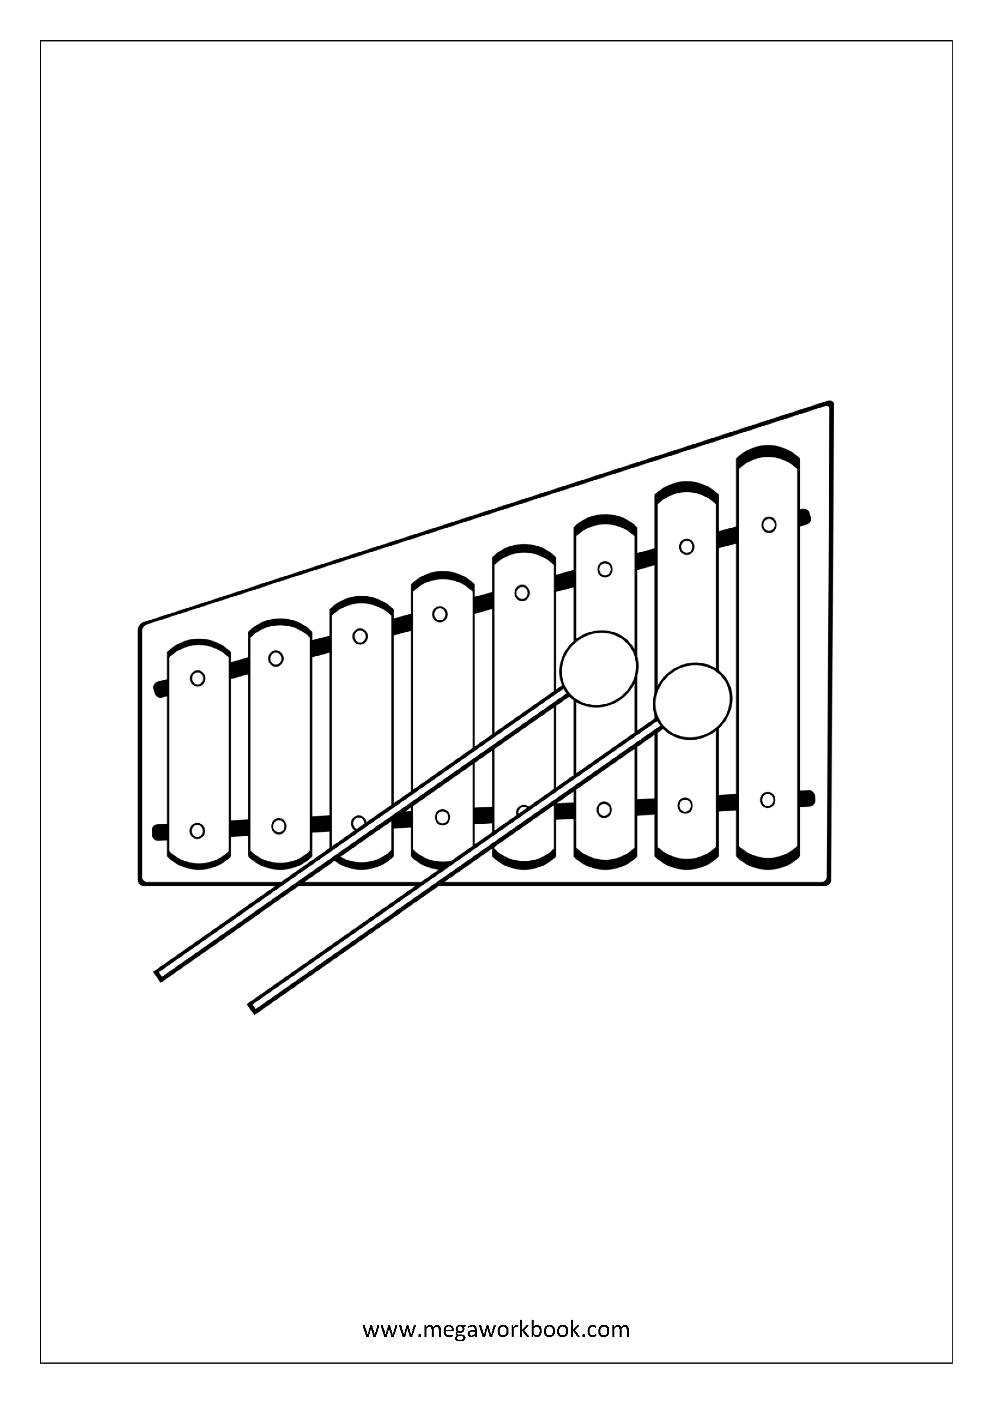 Coloring pages xylophone -  Coloring Sheet Musical Instruments Xylophone